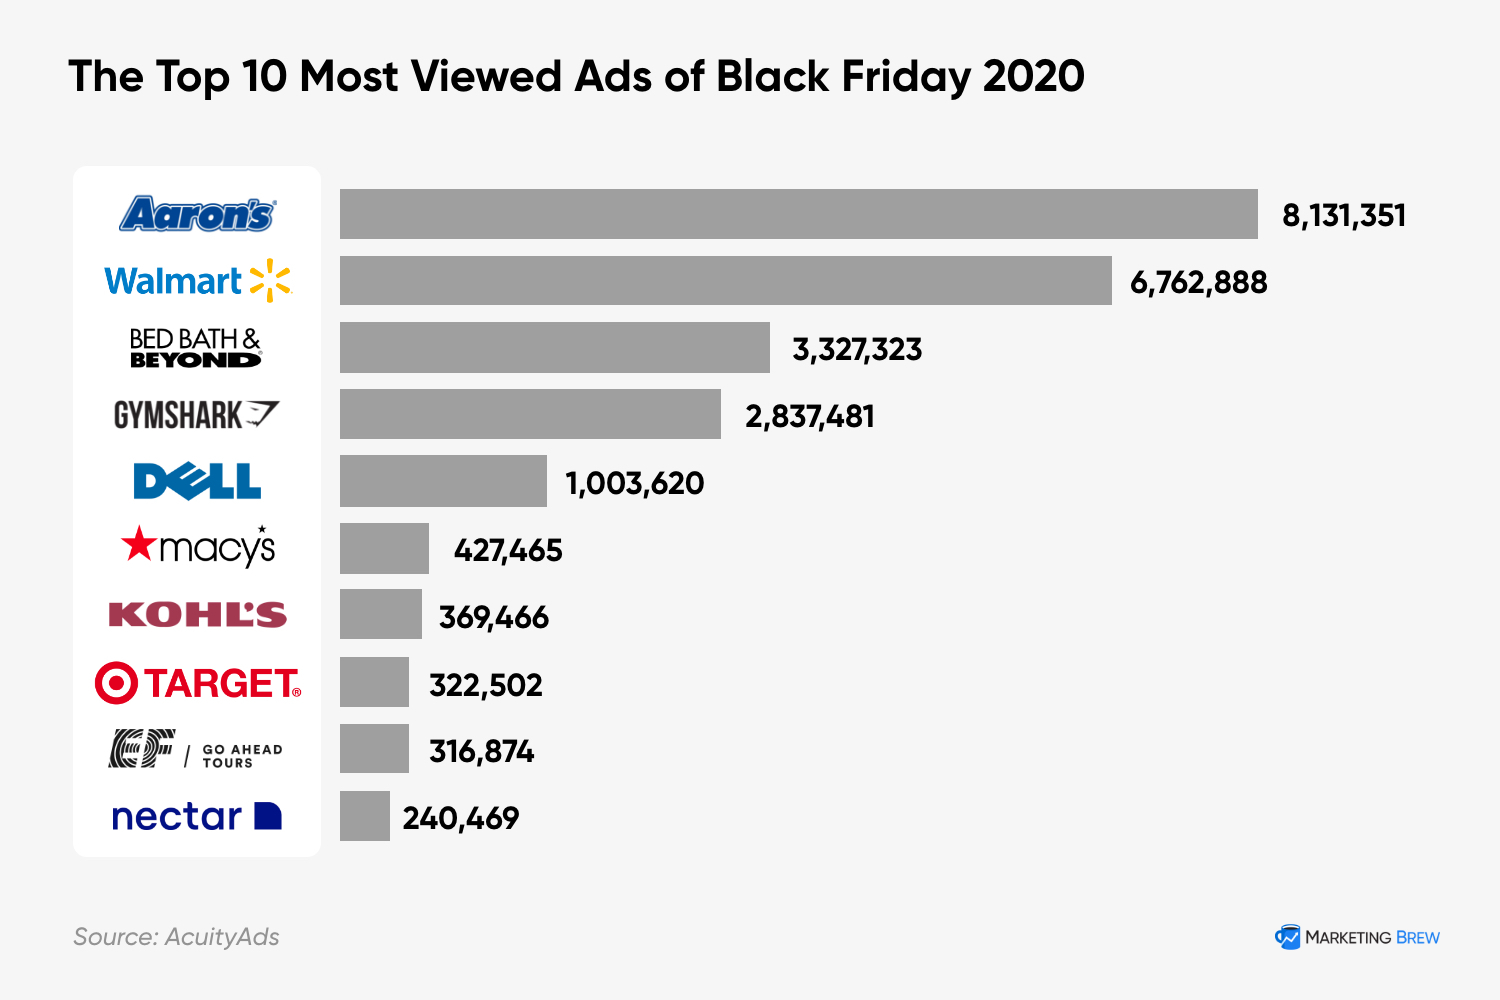 The 10 Most Viewed Black Friday Ads